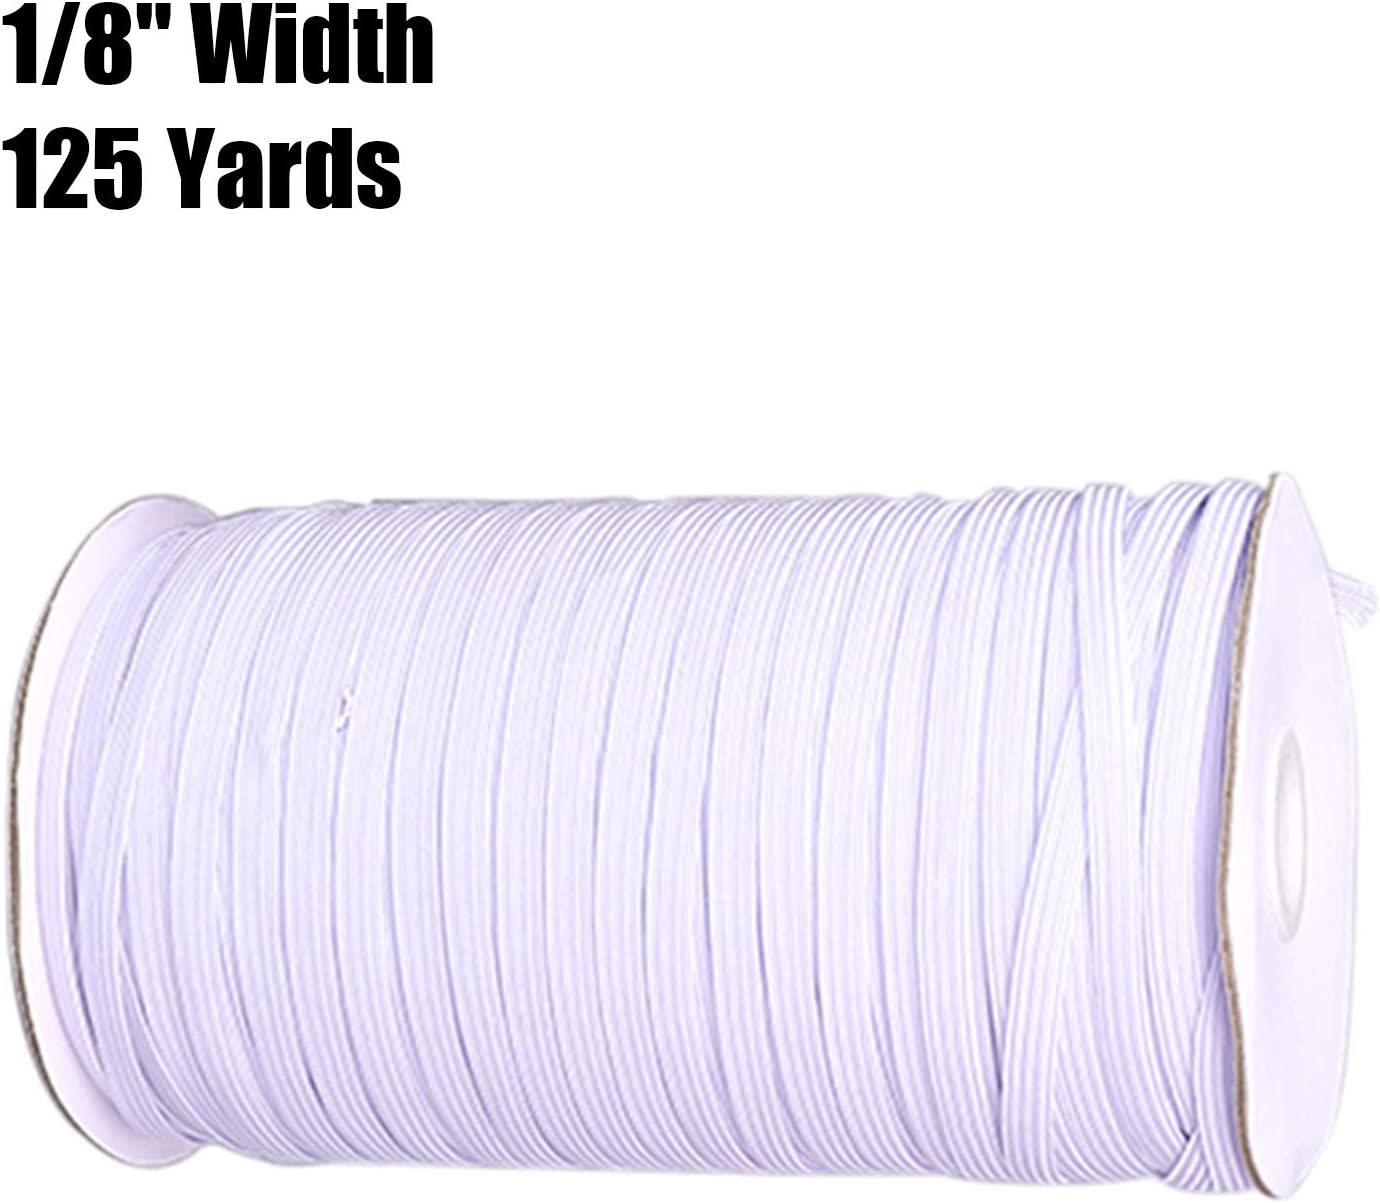 Landrol 1//8 Inch Width 125 Yards Length White Heavy Stretch Elasticity Braided Knit Flat Elastic Band Strap Cord Roll Rope Spool Bungee for Sewing Crafting Crafts DIY Mask Cuff